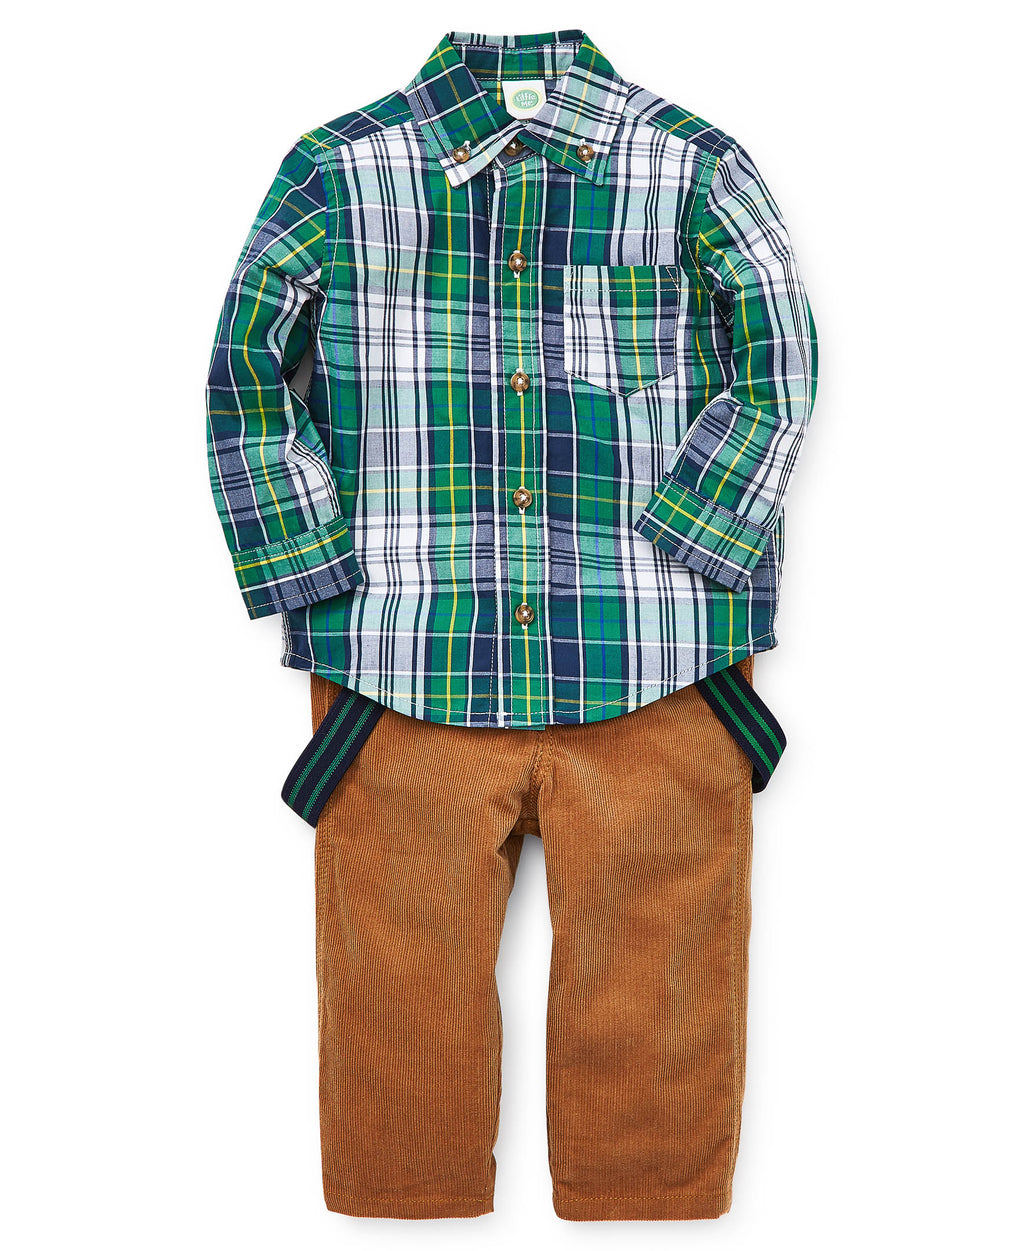 Green Plaid Toddler Button-Up Top and Pants